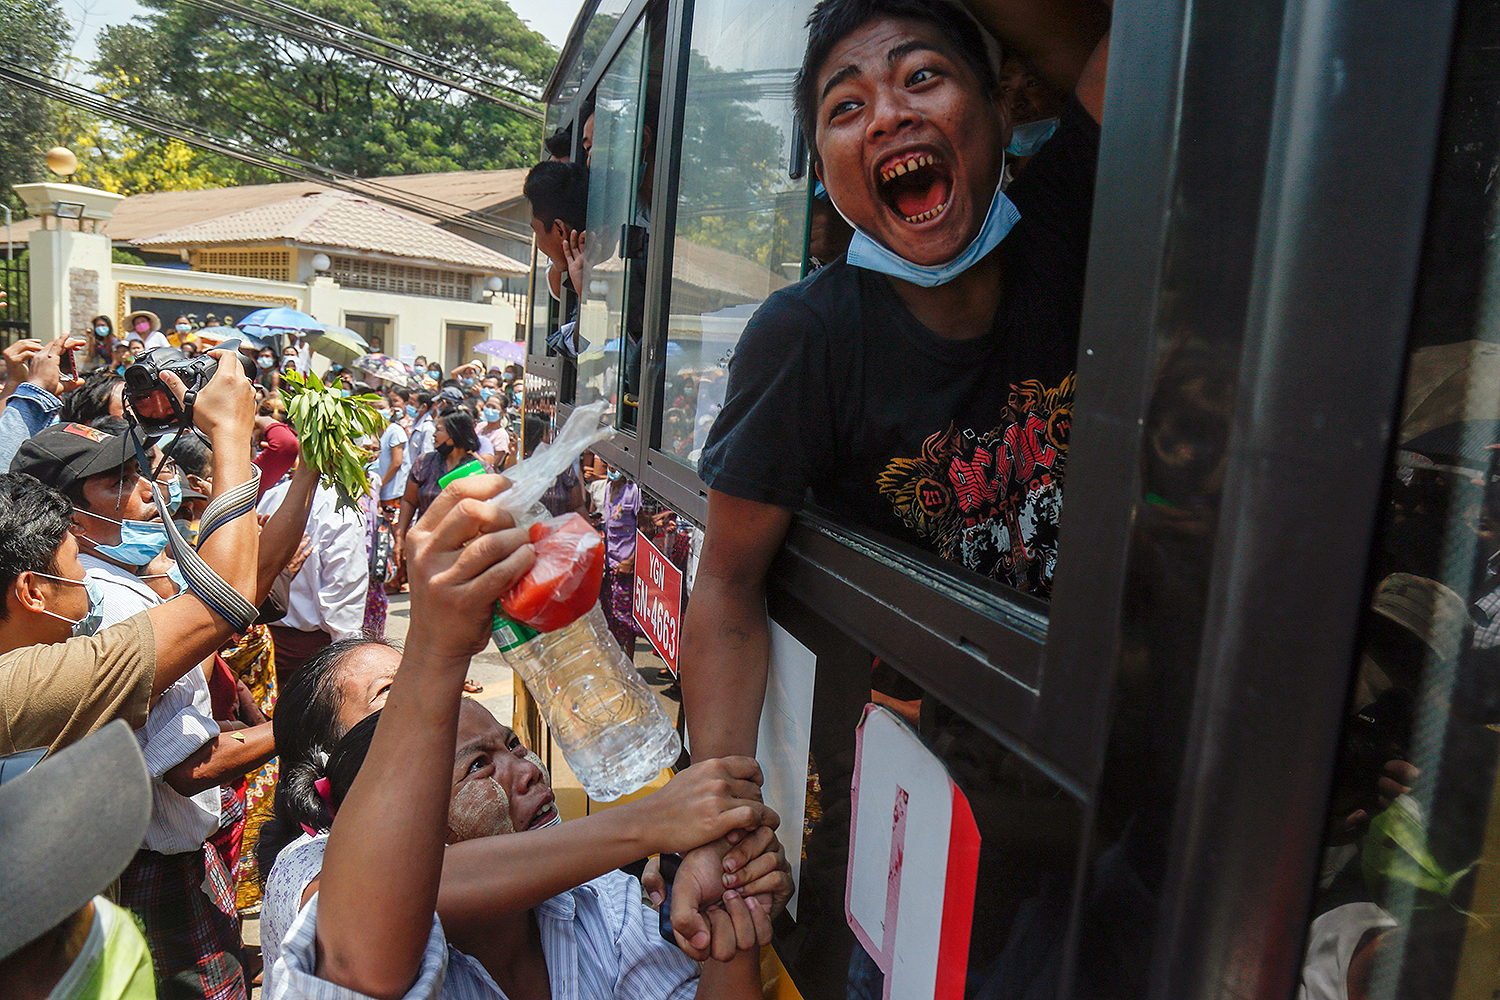 A man reacts as he is released from Insein Prison in Yangon, Myanmar, on April 17, as part of an annual amnesty to thousands of prisoners to mark the April New Year holiday. SAI AUNG MAIN/AFP via Getty Images